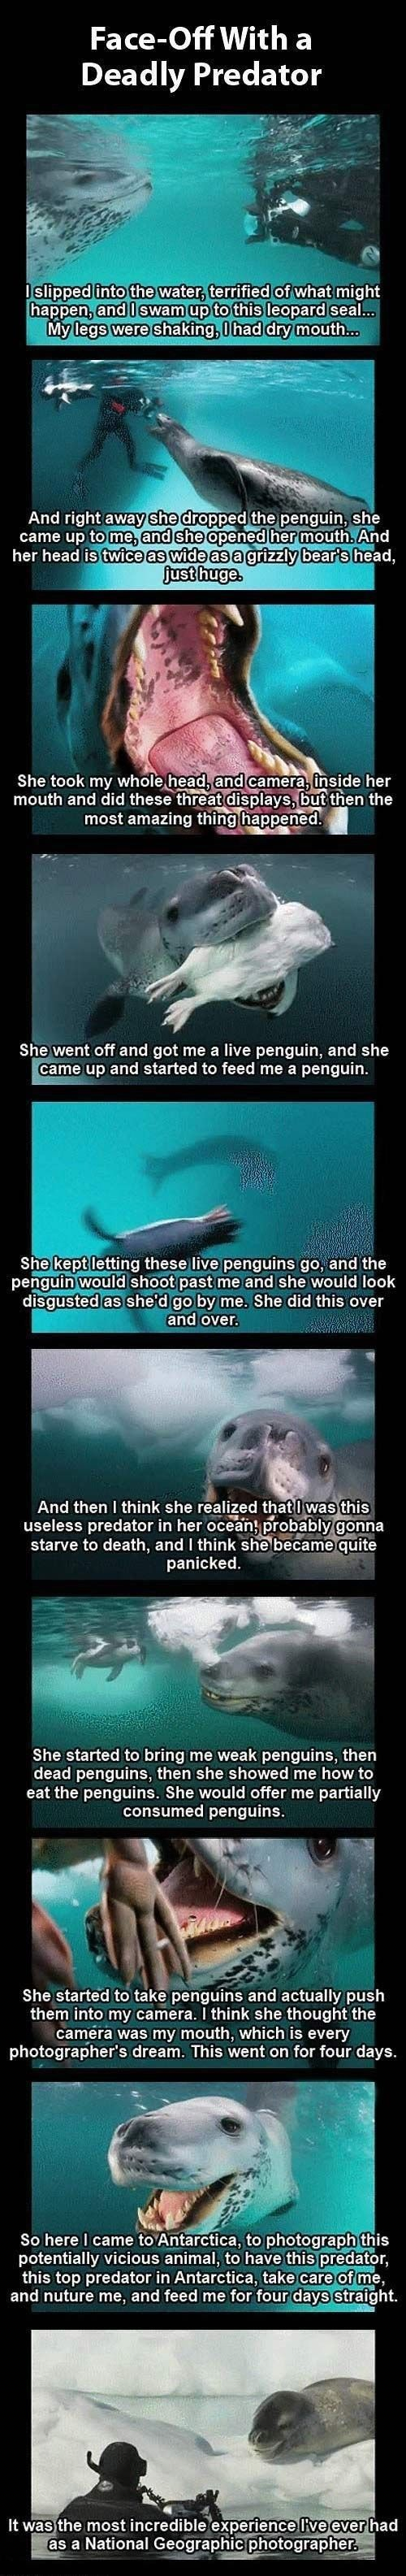 I'm STILL scared to death of Leopard Seals. Luckily I live in the Rockies. One must admit, though, this is pretty cool.